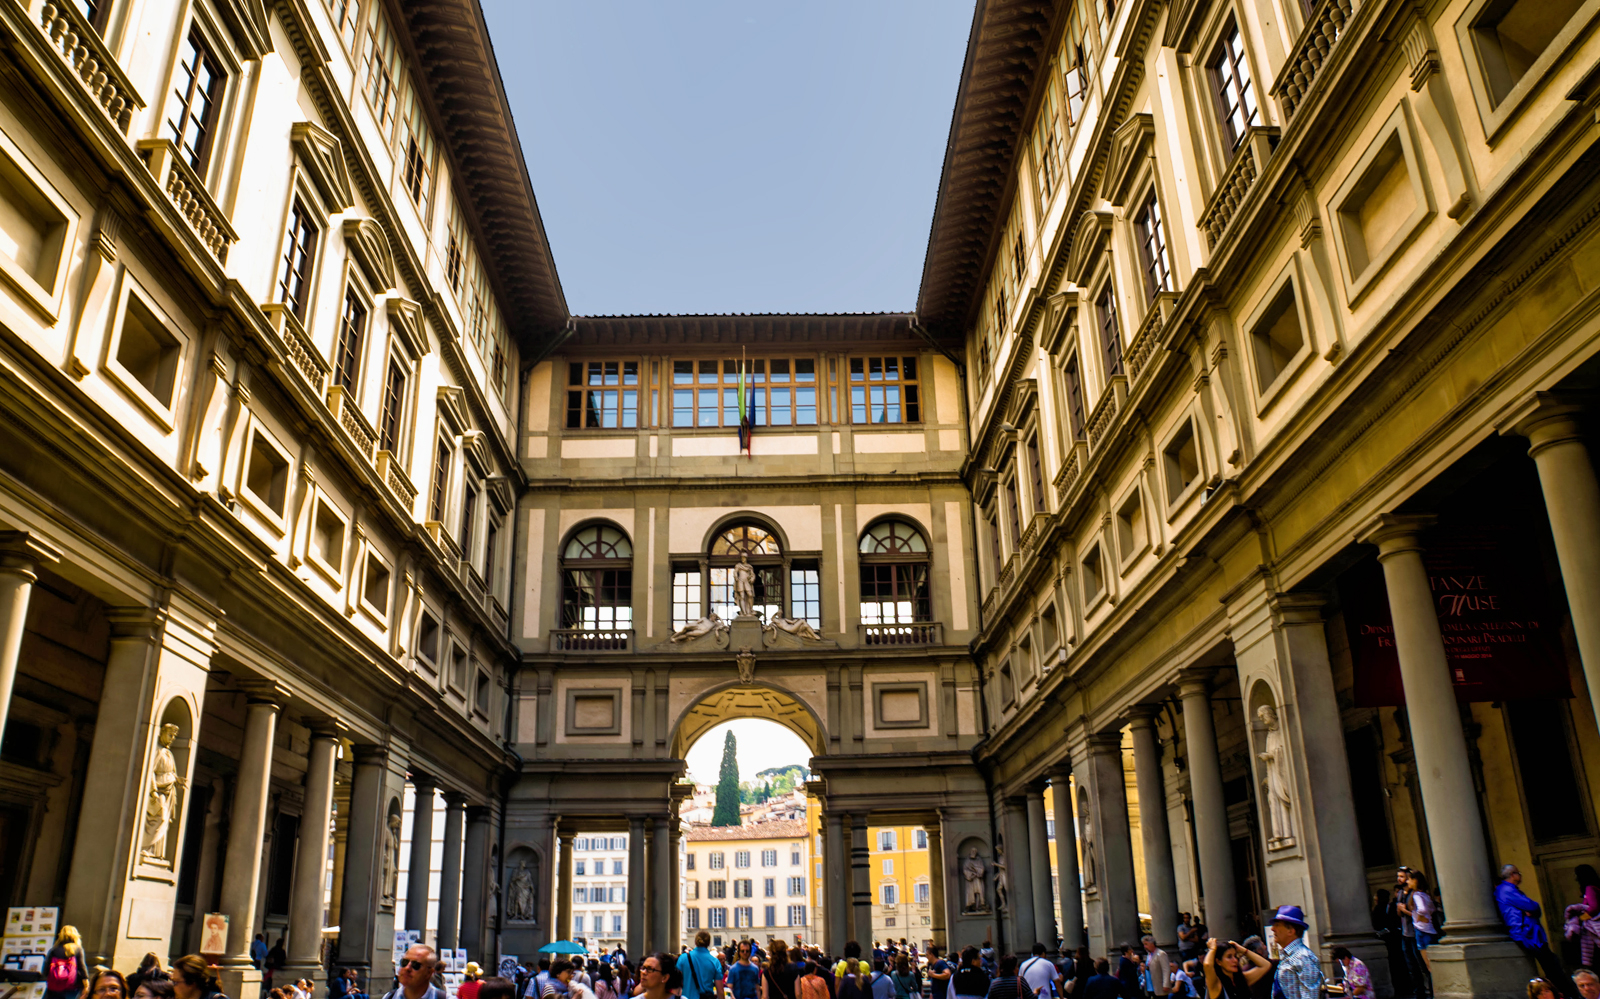 83ba633f b52c 435d a63a 481d4961b482 7605 florence skip the line to uffizi   accademia galleries   florence city tour 01